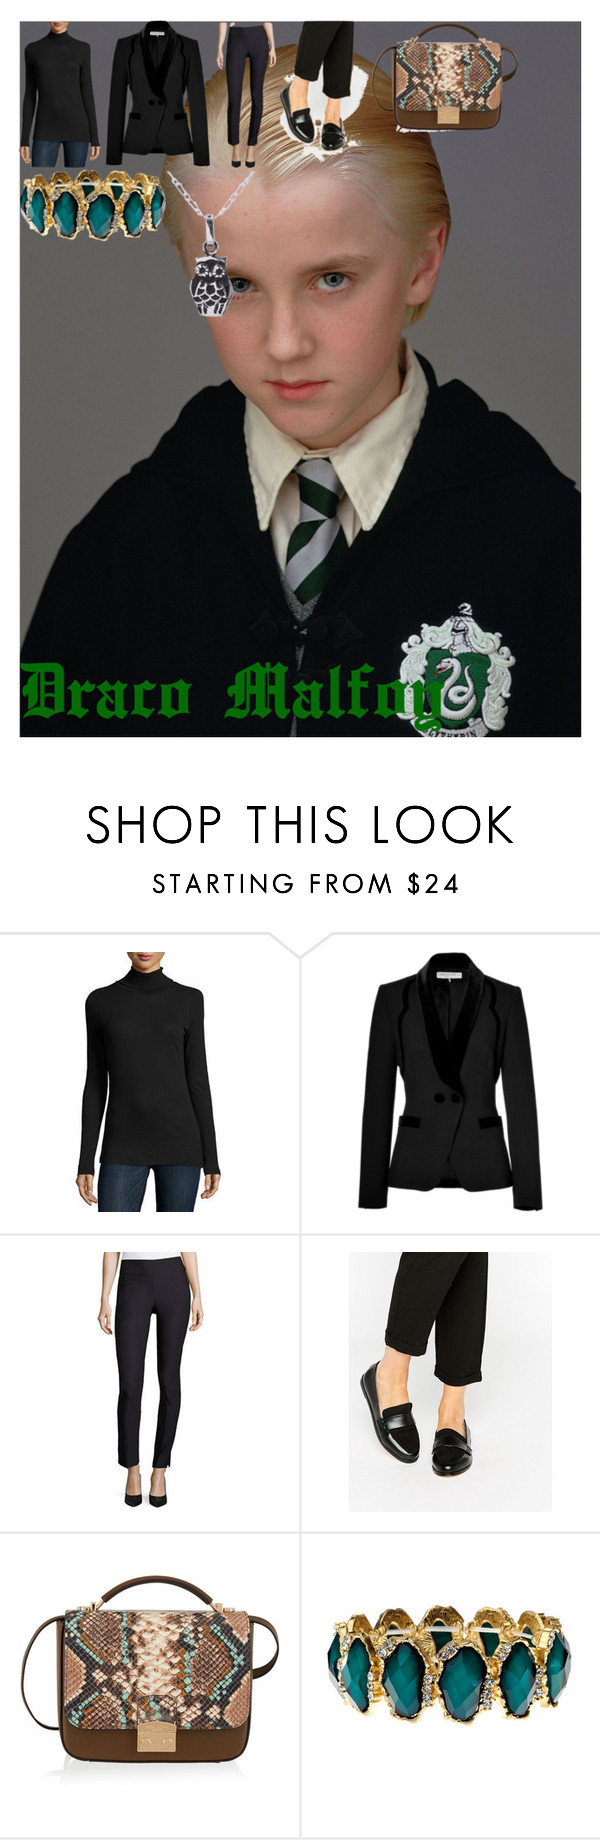 """""""Draco Malfoy"""" by oroartye-1 on Polyvore featuring Majestic Filatures, Emilio Pucci, NIC+ZOE, London Rebel, Henri Bendel, NOVICA, wearwhatyouwatch and film"""